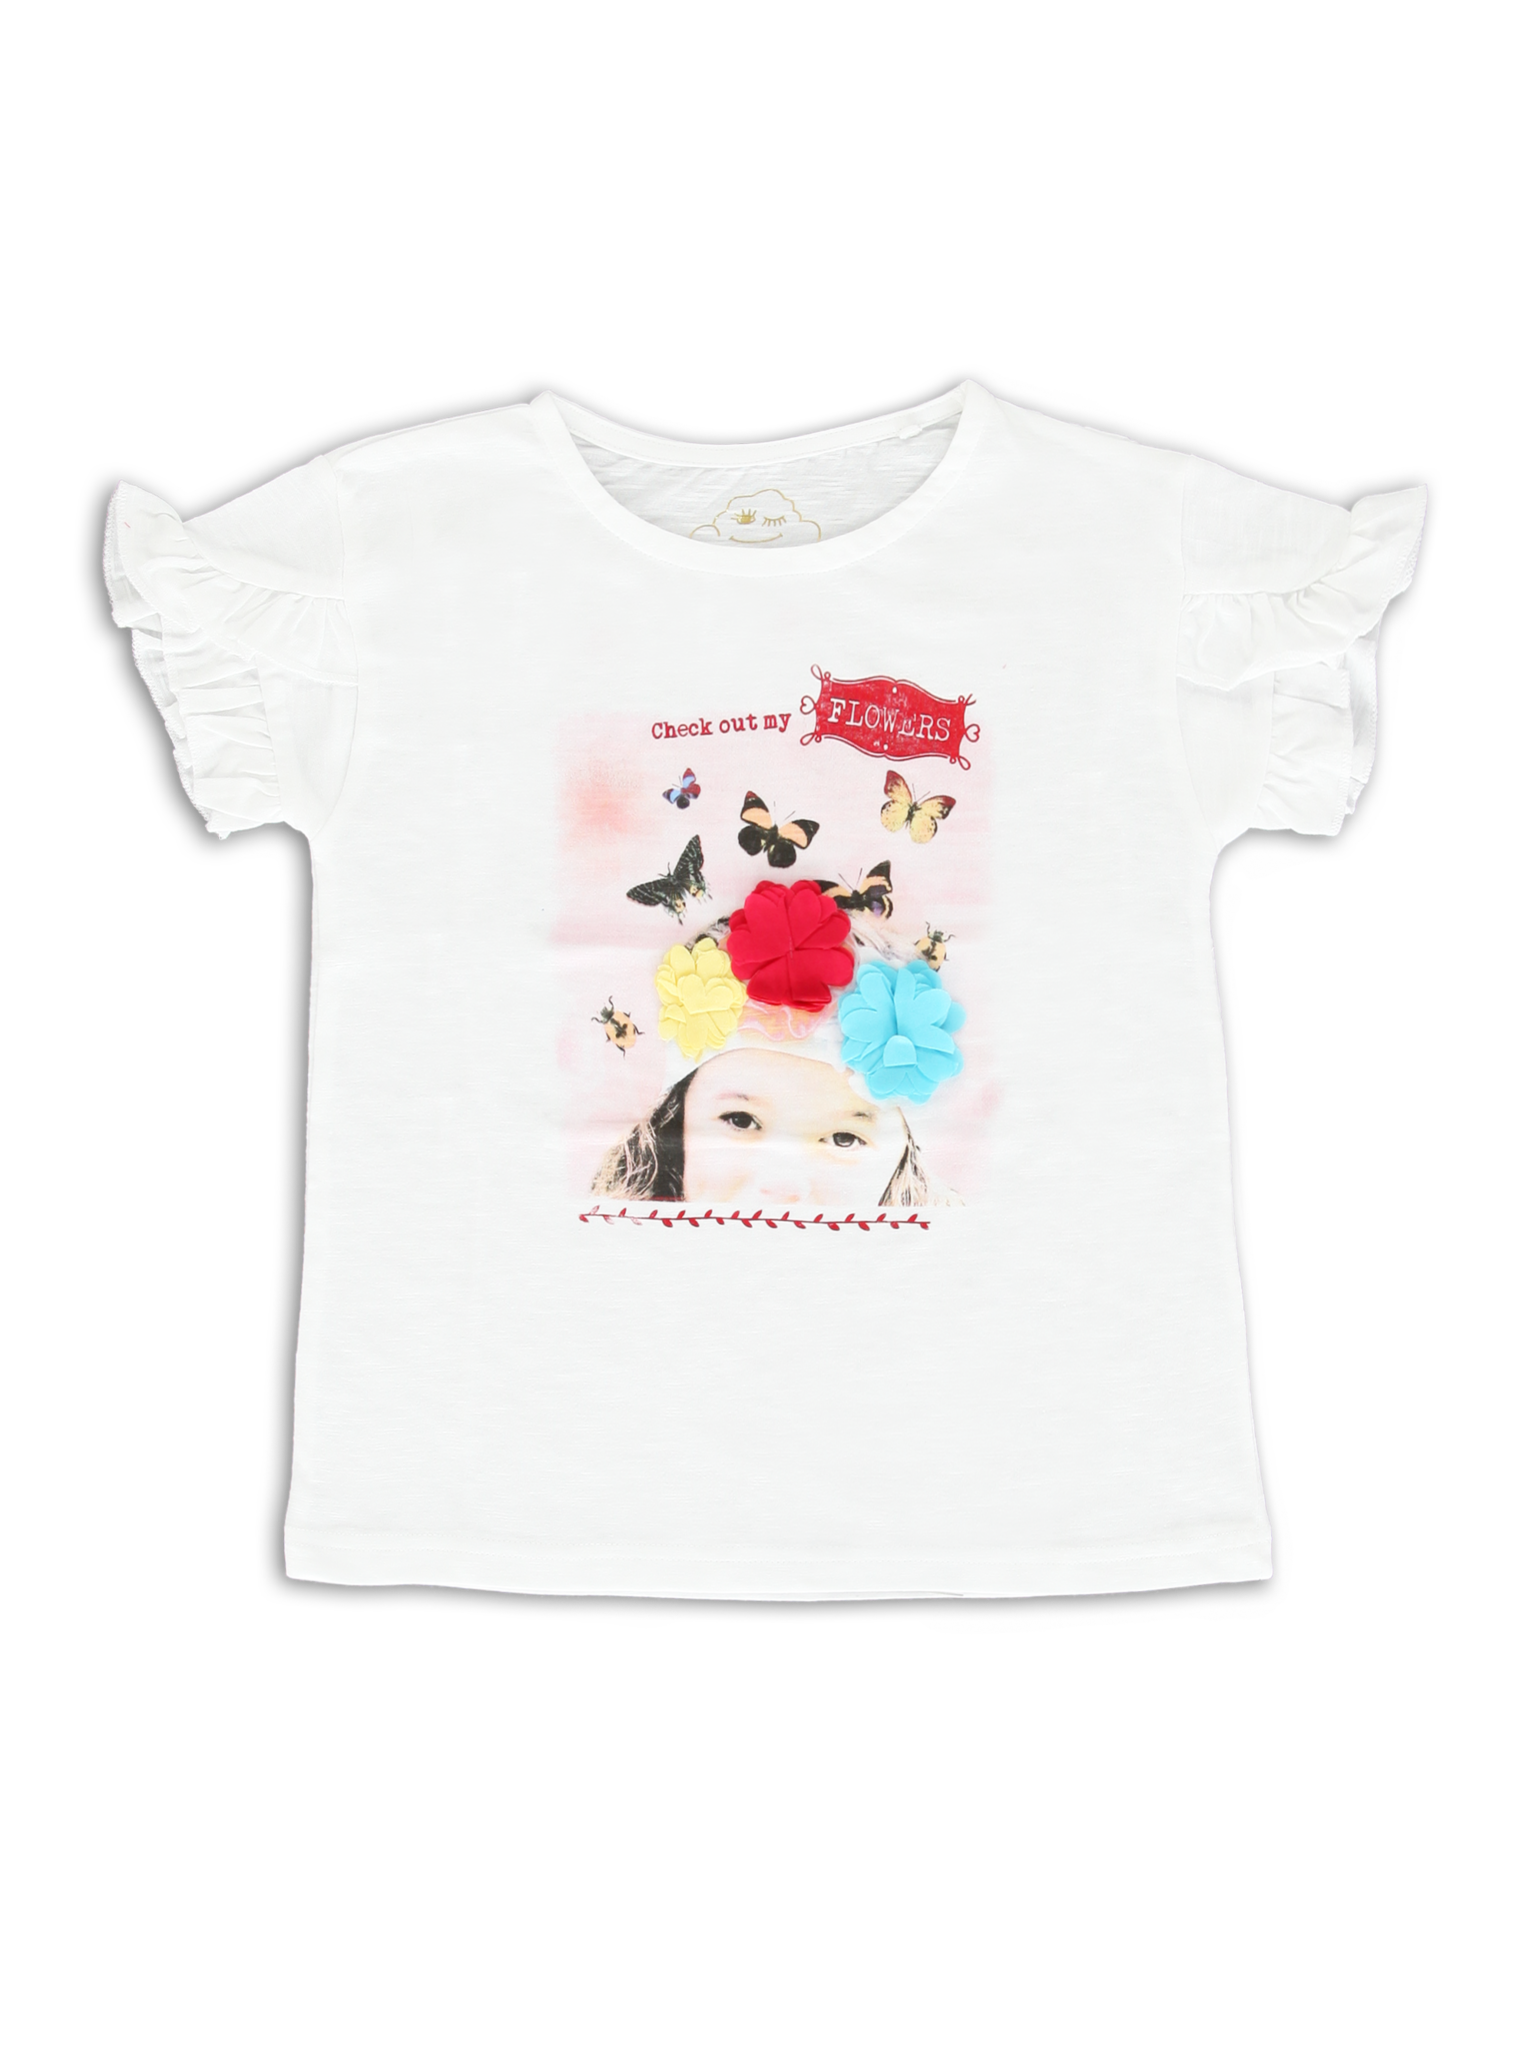 All Brands | Summerproducts Small Girls | T-shirt | 12 pcs/box